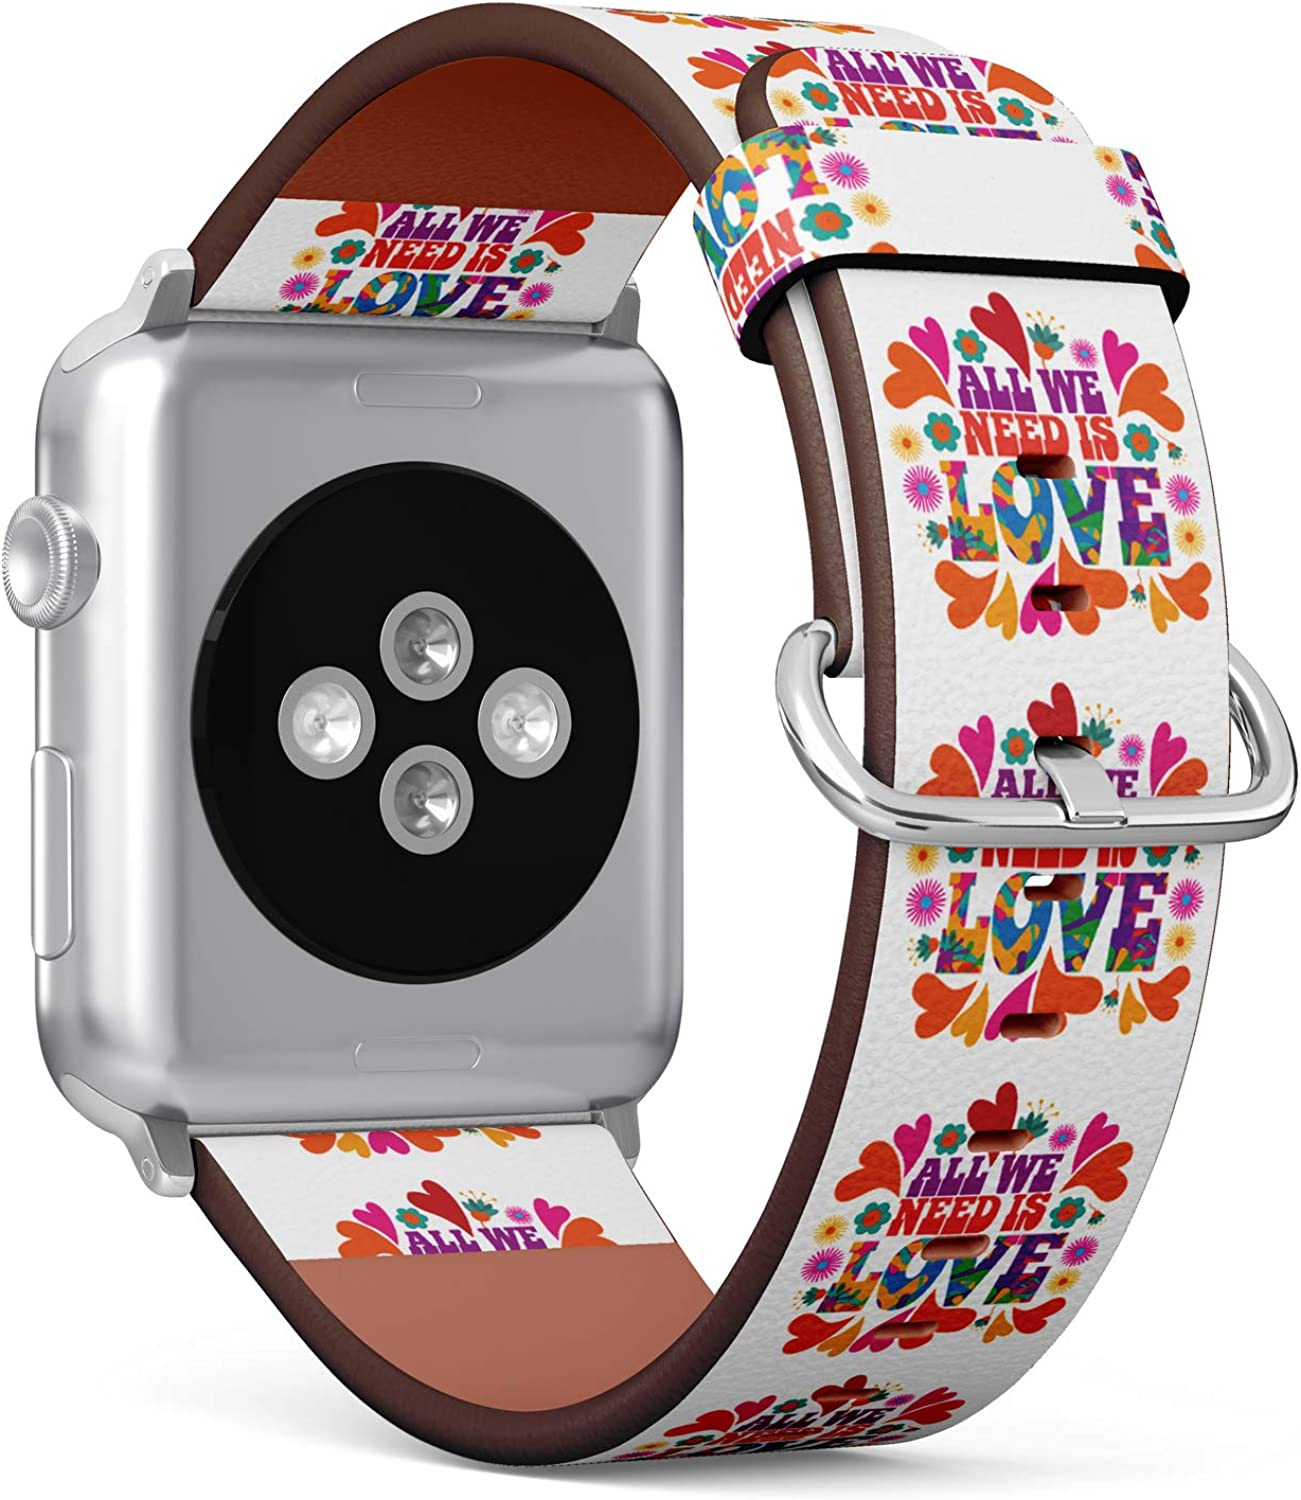 (Hippie Typography - All We Need is Love) Patterned Leather Wristband Strap for Apple Watch Series 4/3/2/1 gen,Replacement for iWatch 42mm / 44mm Bands